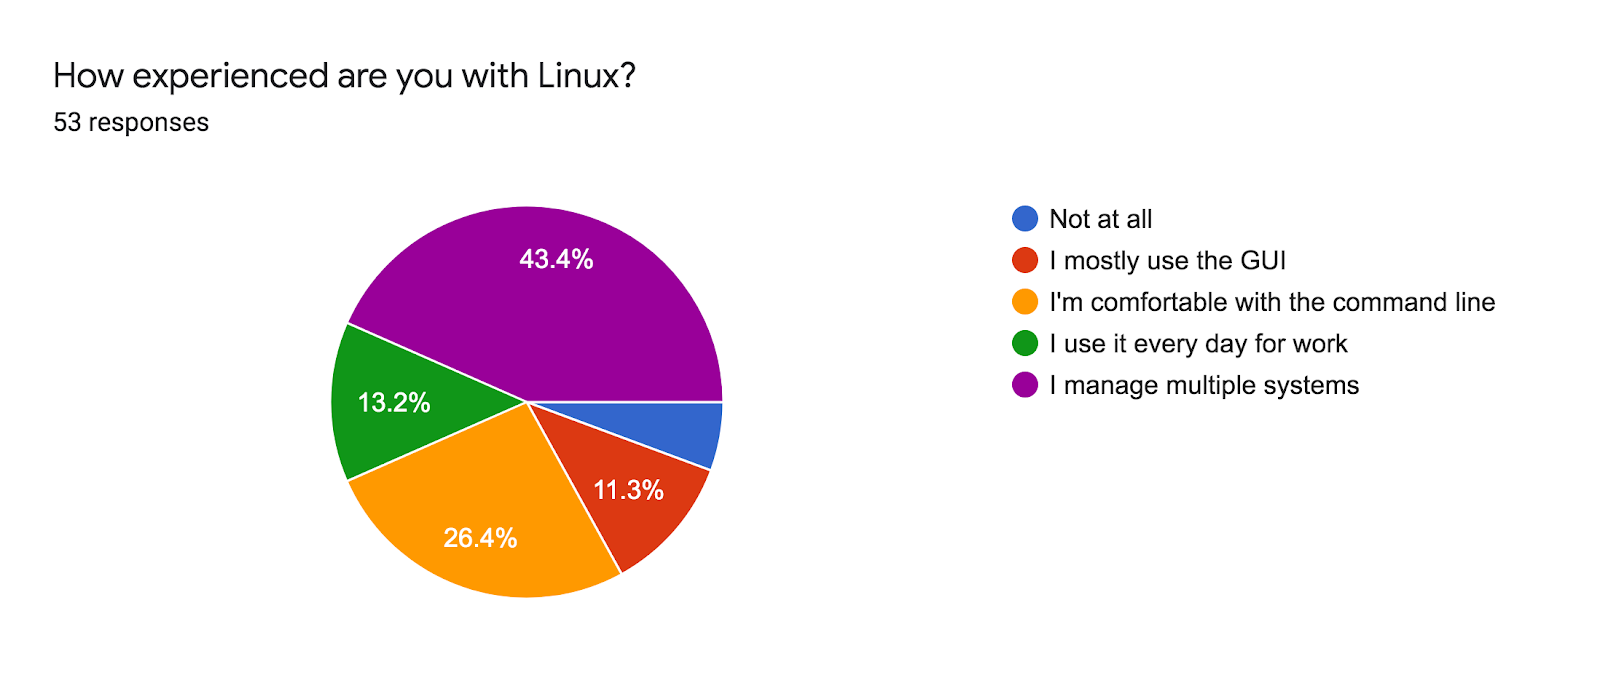 Forms response chart. Question title: How experienced are you with Linux?. Number of responses: 53 responses.